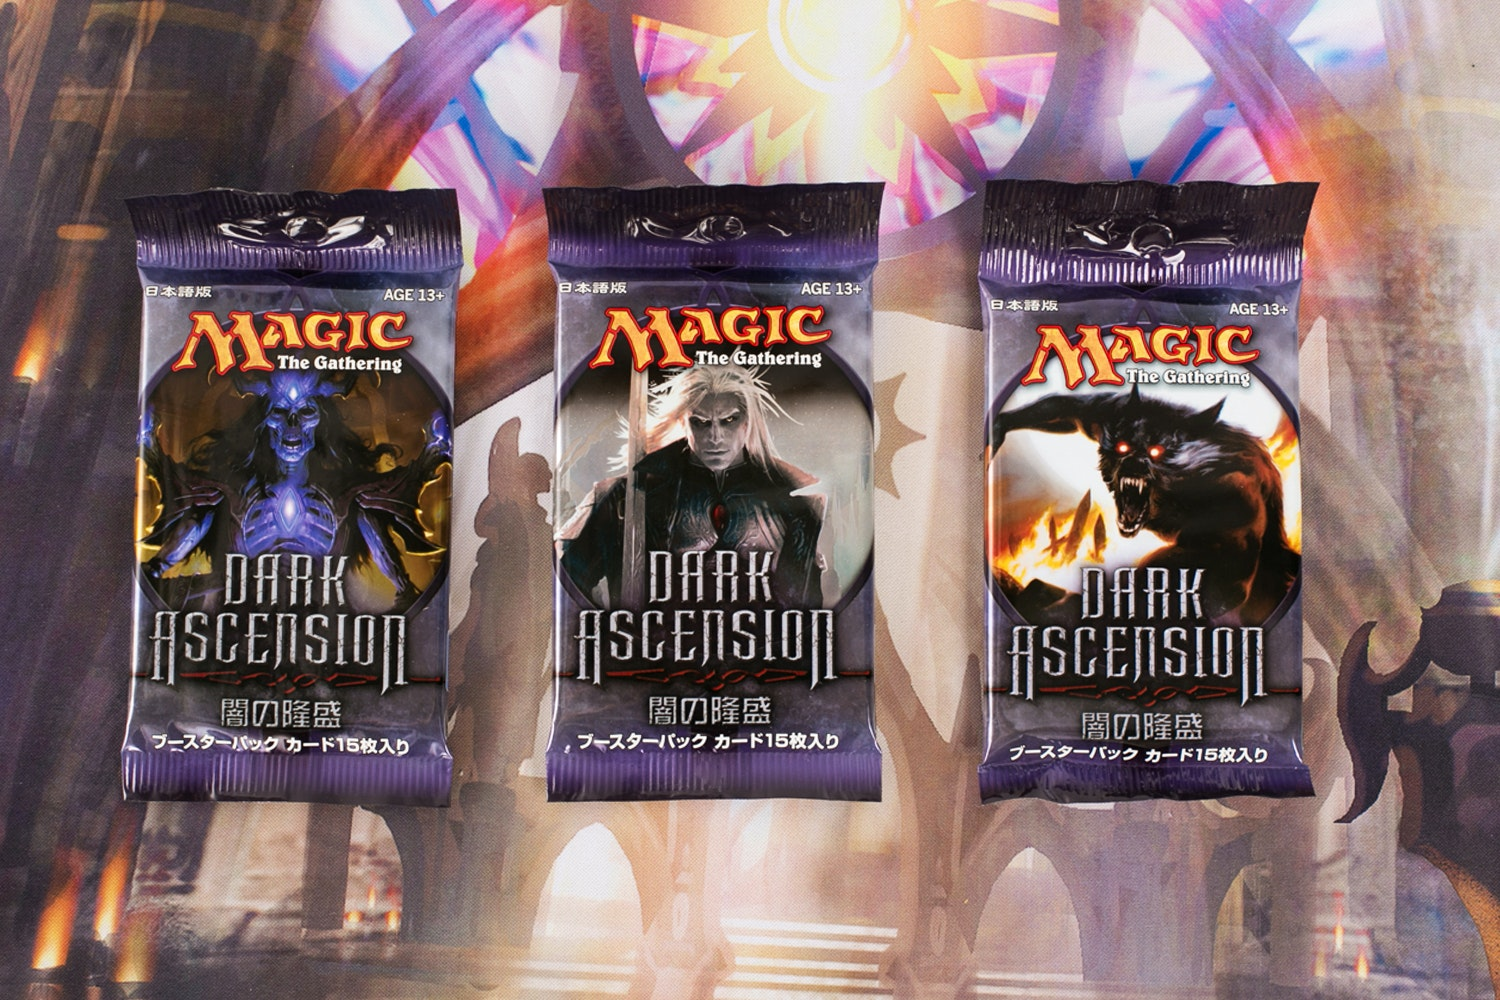 Japanese Dark Ascension Booster Box